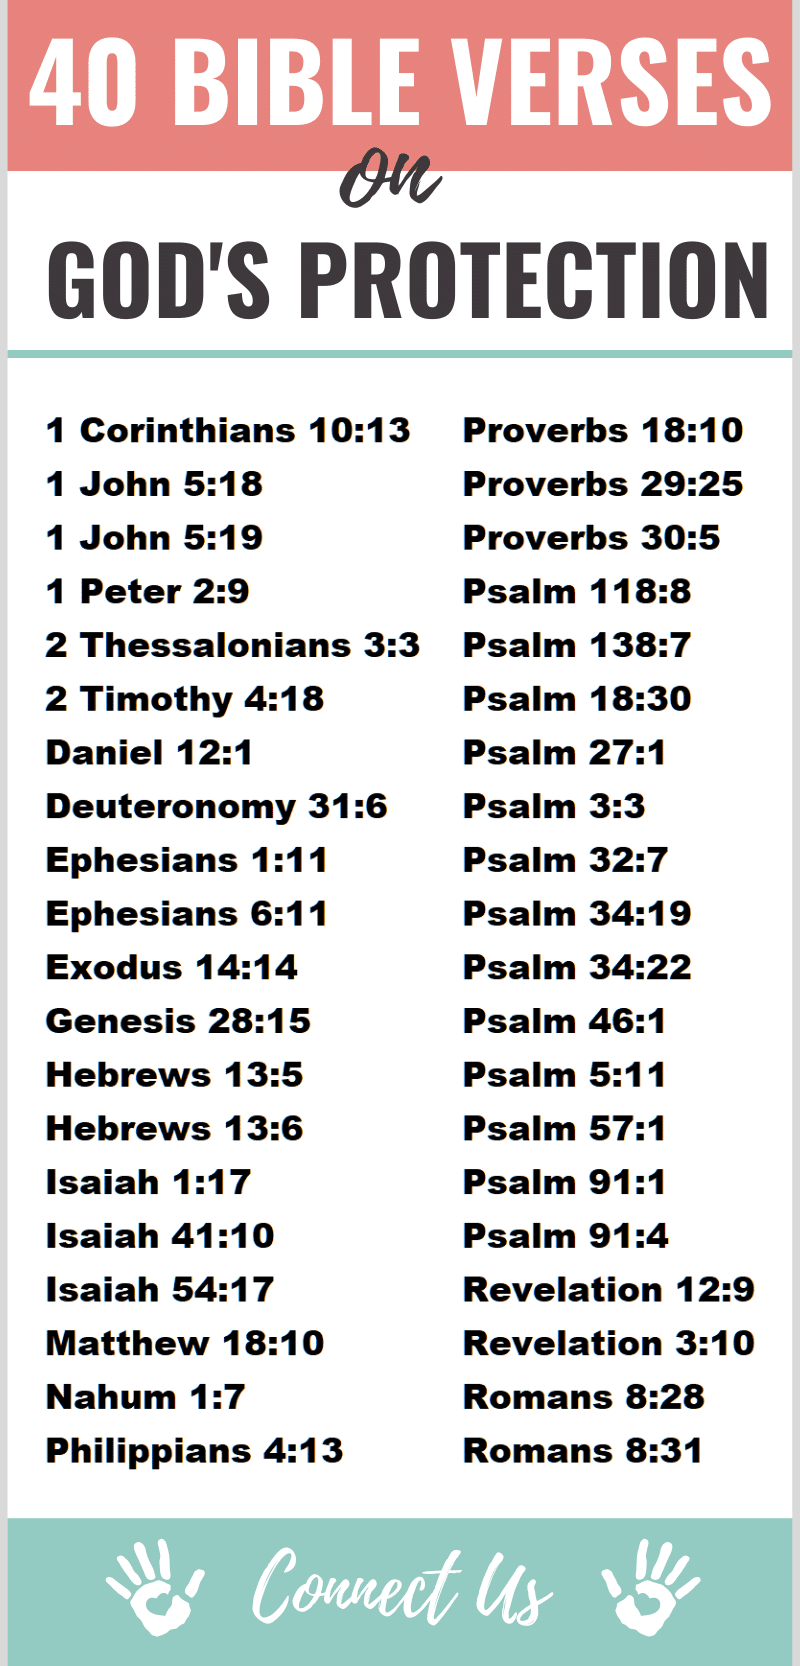 Bible Verses on God's Protection